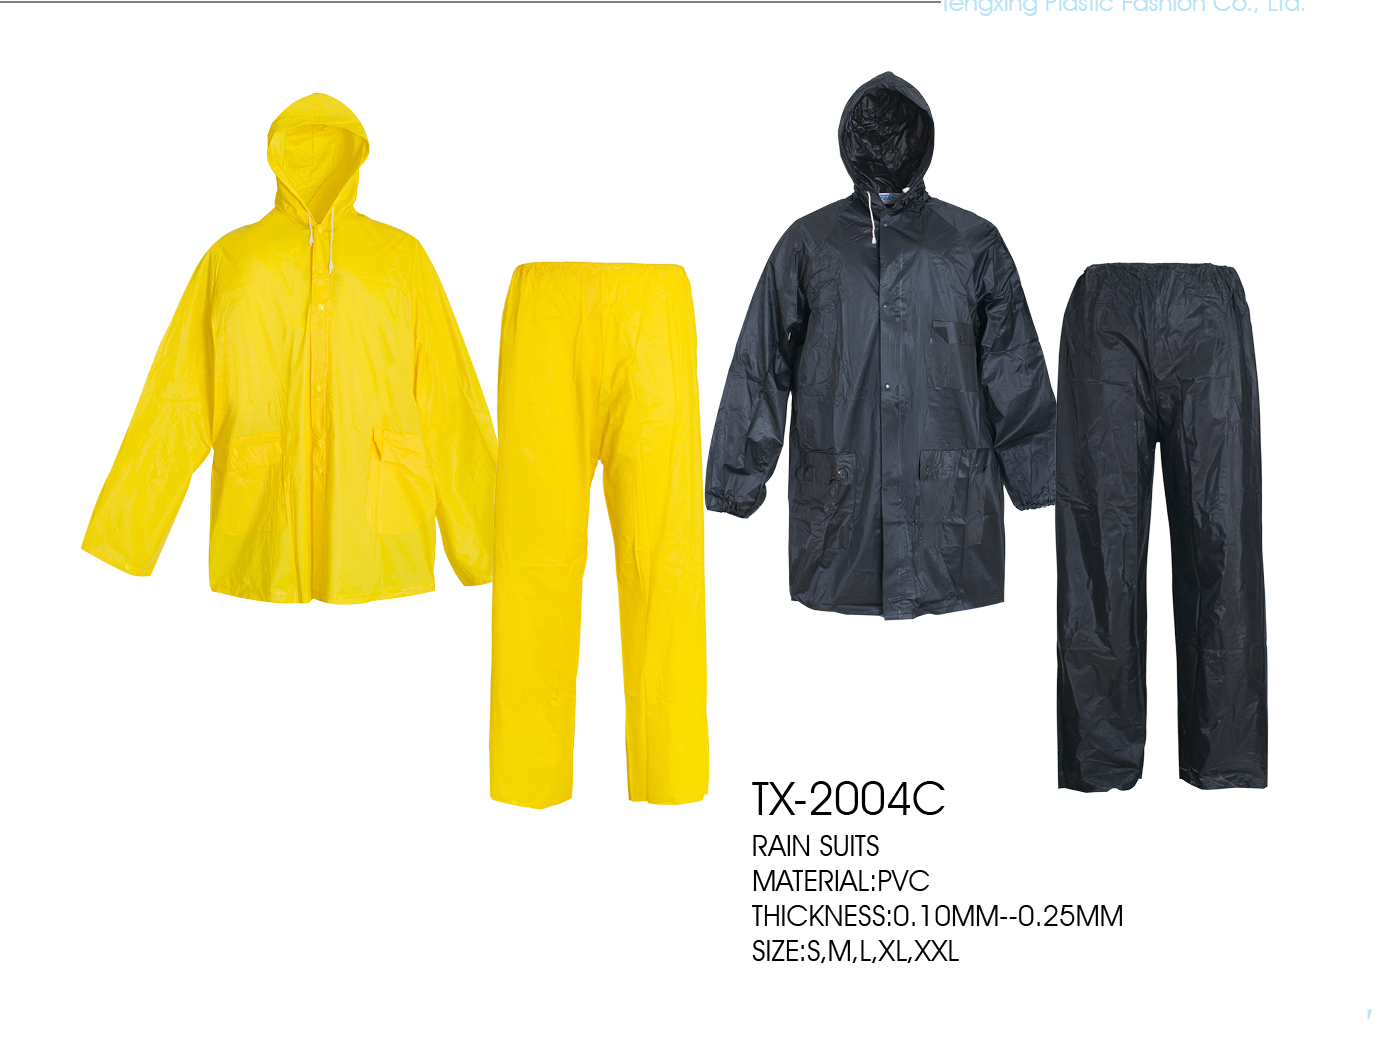 Raincoat suit